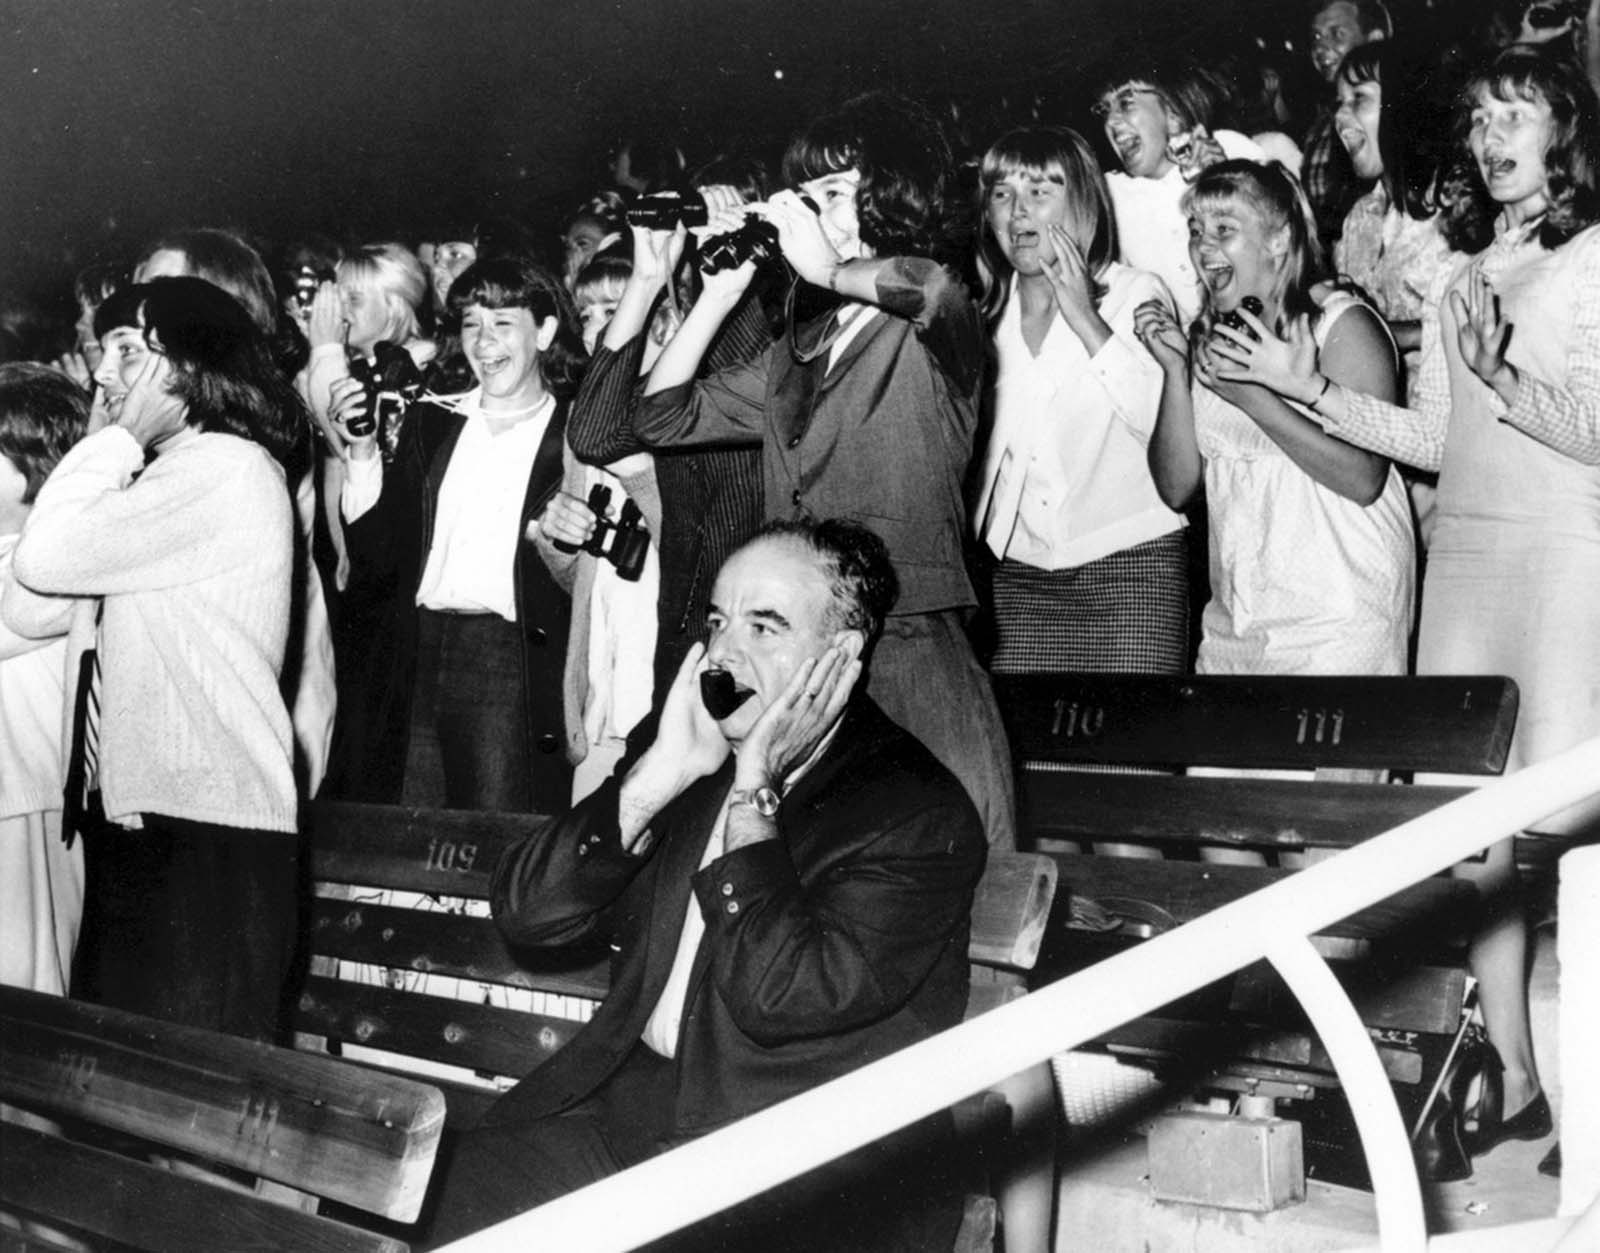 A man covers his ears as 18,000 screaming fans react to The Beatles in the Hollywood Bowl, California, during their U.S. concert tour on August 23, 1964.